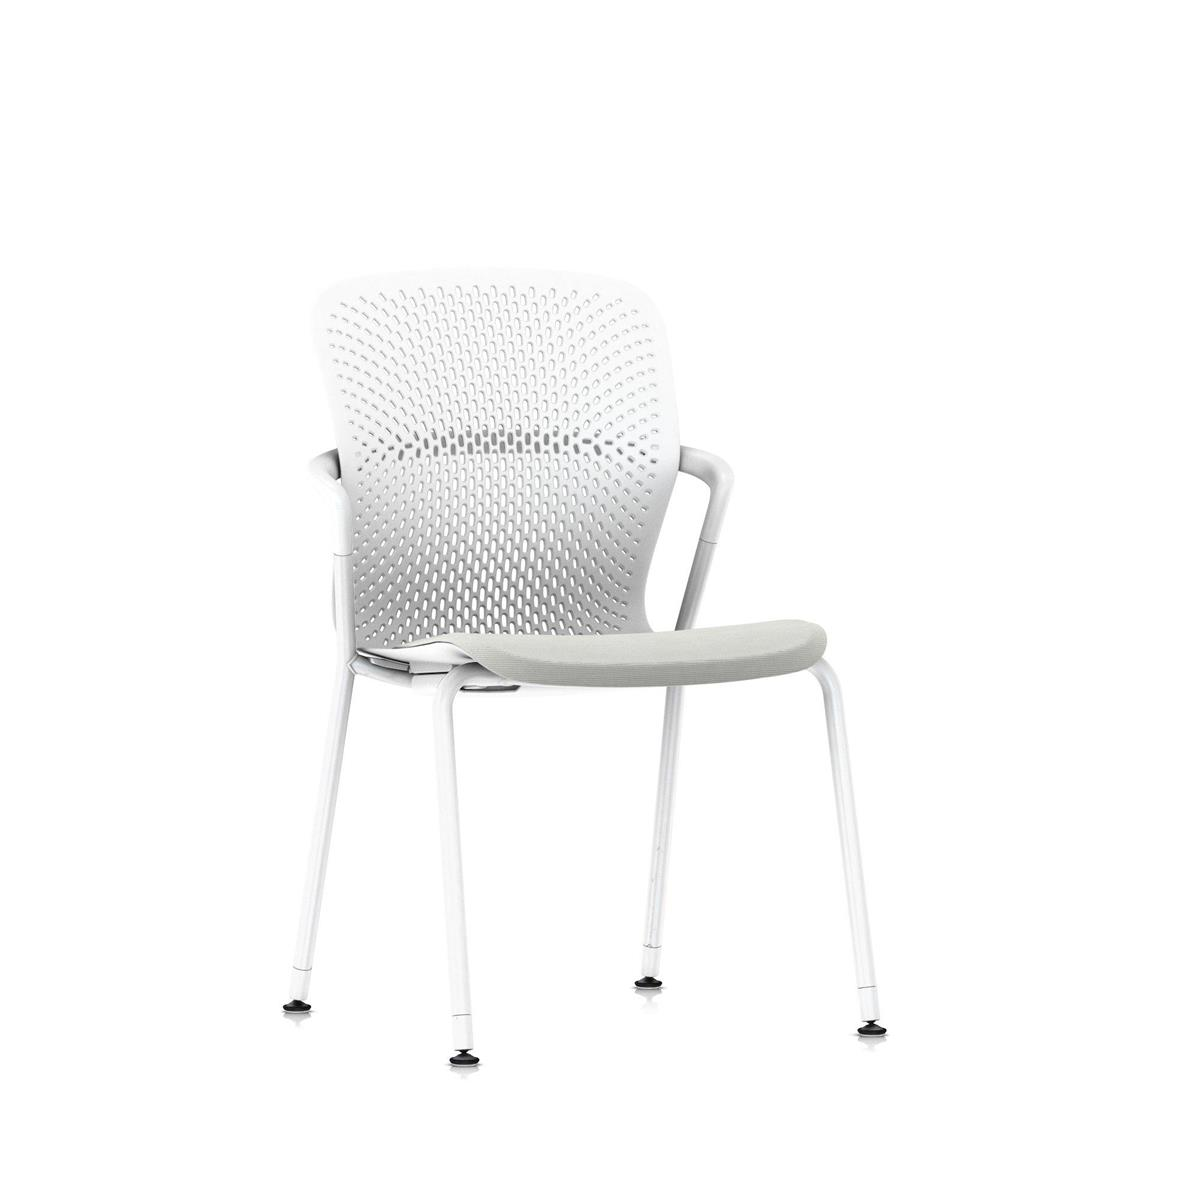 Keyn 4 Leg Chair - Studio White & Camira Sprint, glidere for harde gulv